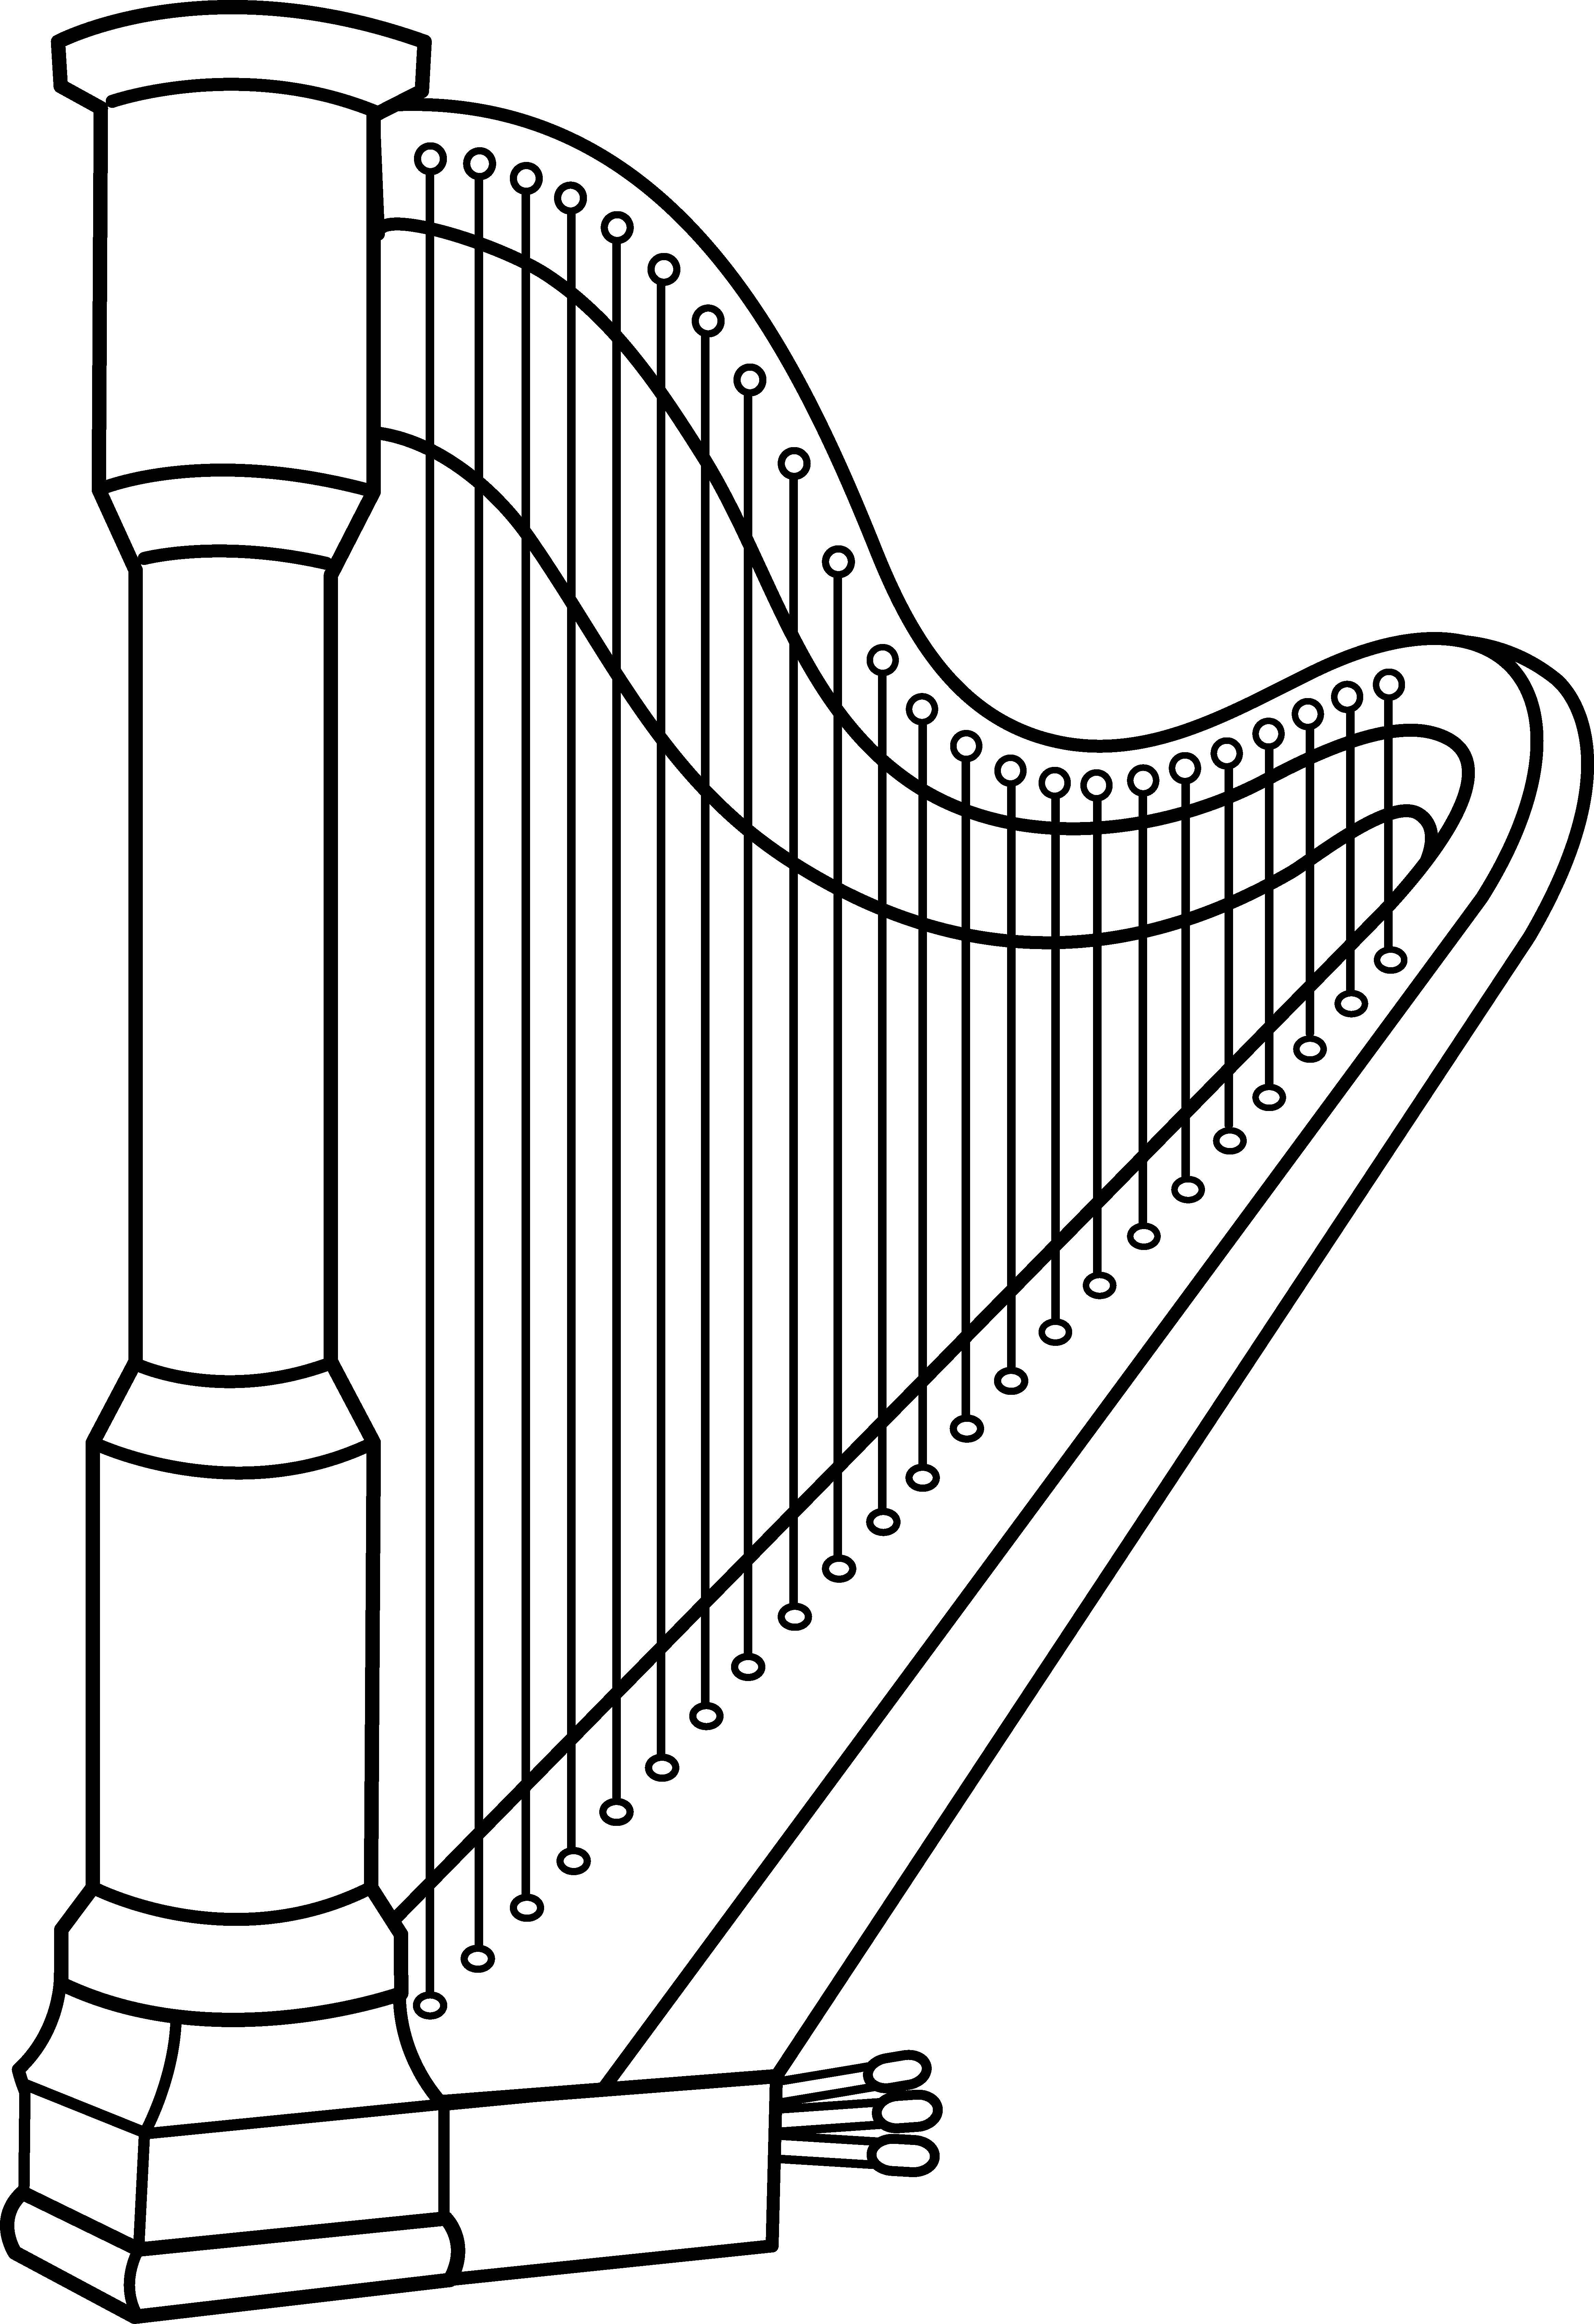 Musical thanksgiving clipart free vector transparent Musical Harp Line Art - Free Clip Art | Harp | Pinterest | Clip art vector transparent